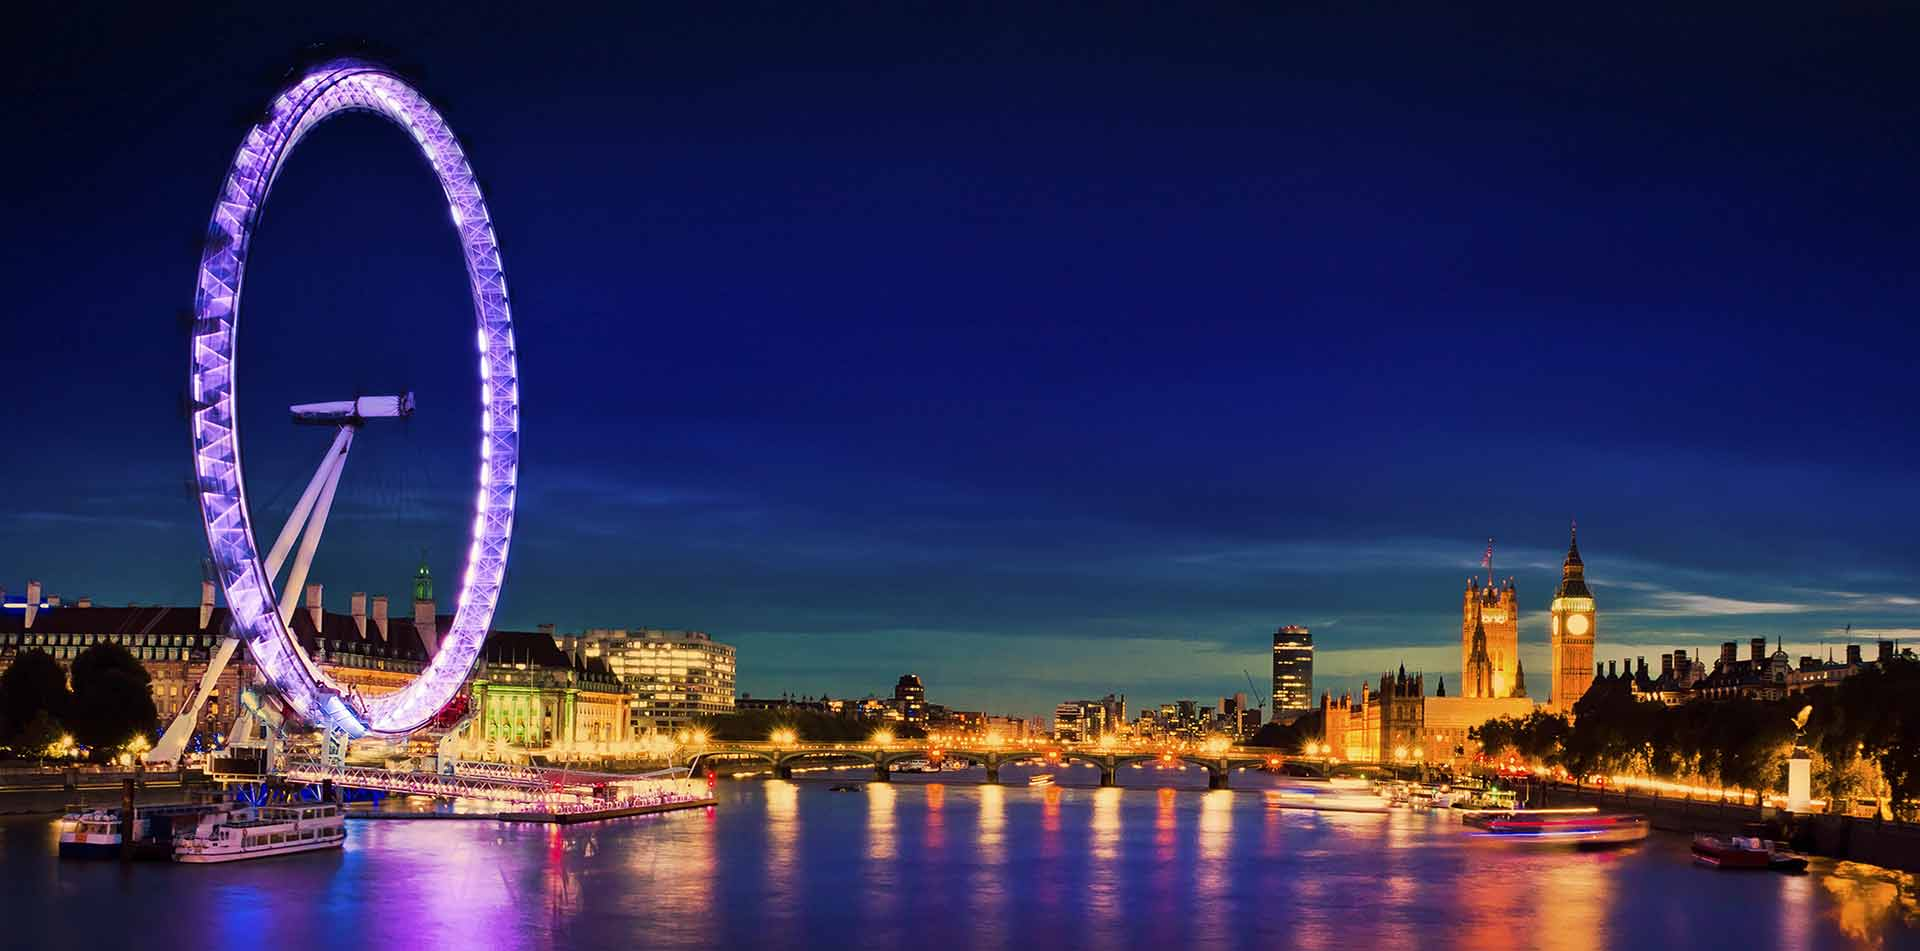 Europe United Kingdom England London Eye bright lights River Thames city skyline at night - luxury vacation destinations